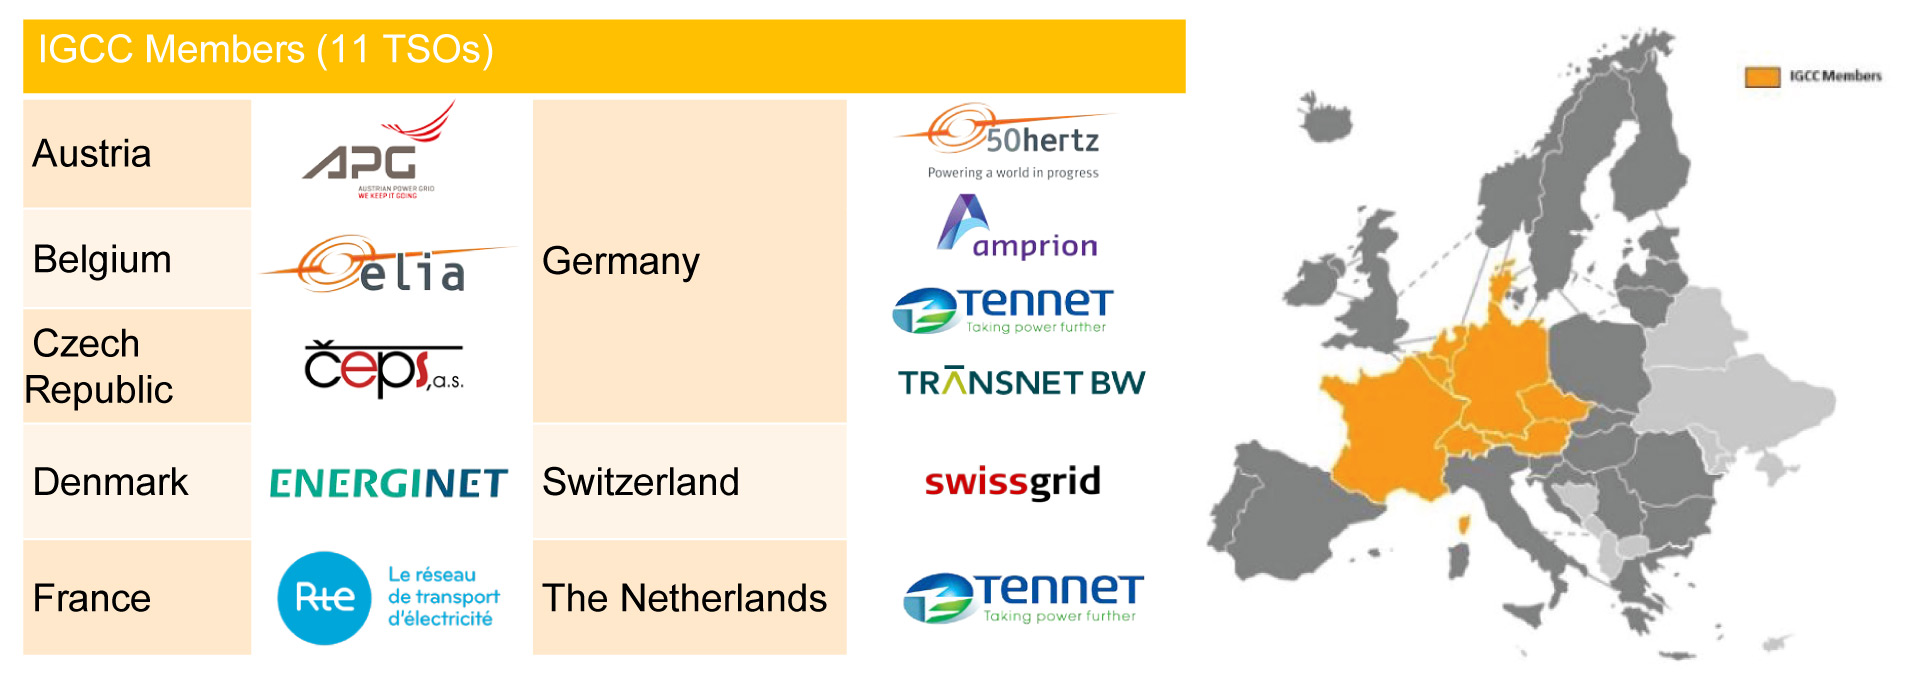 The International Grid Control Cooperation (IGCC) project